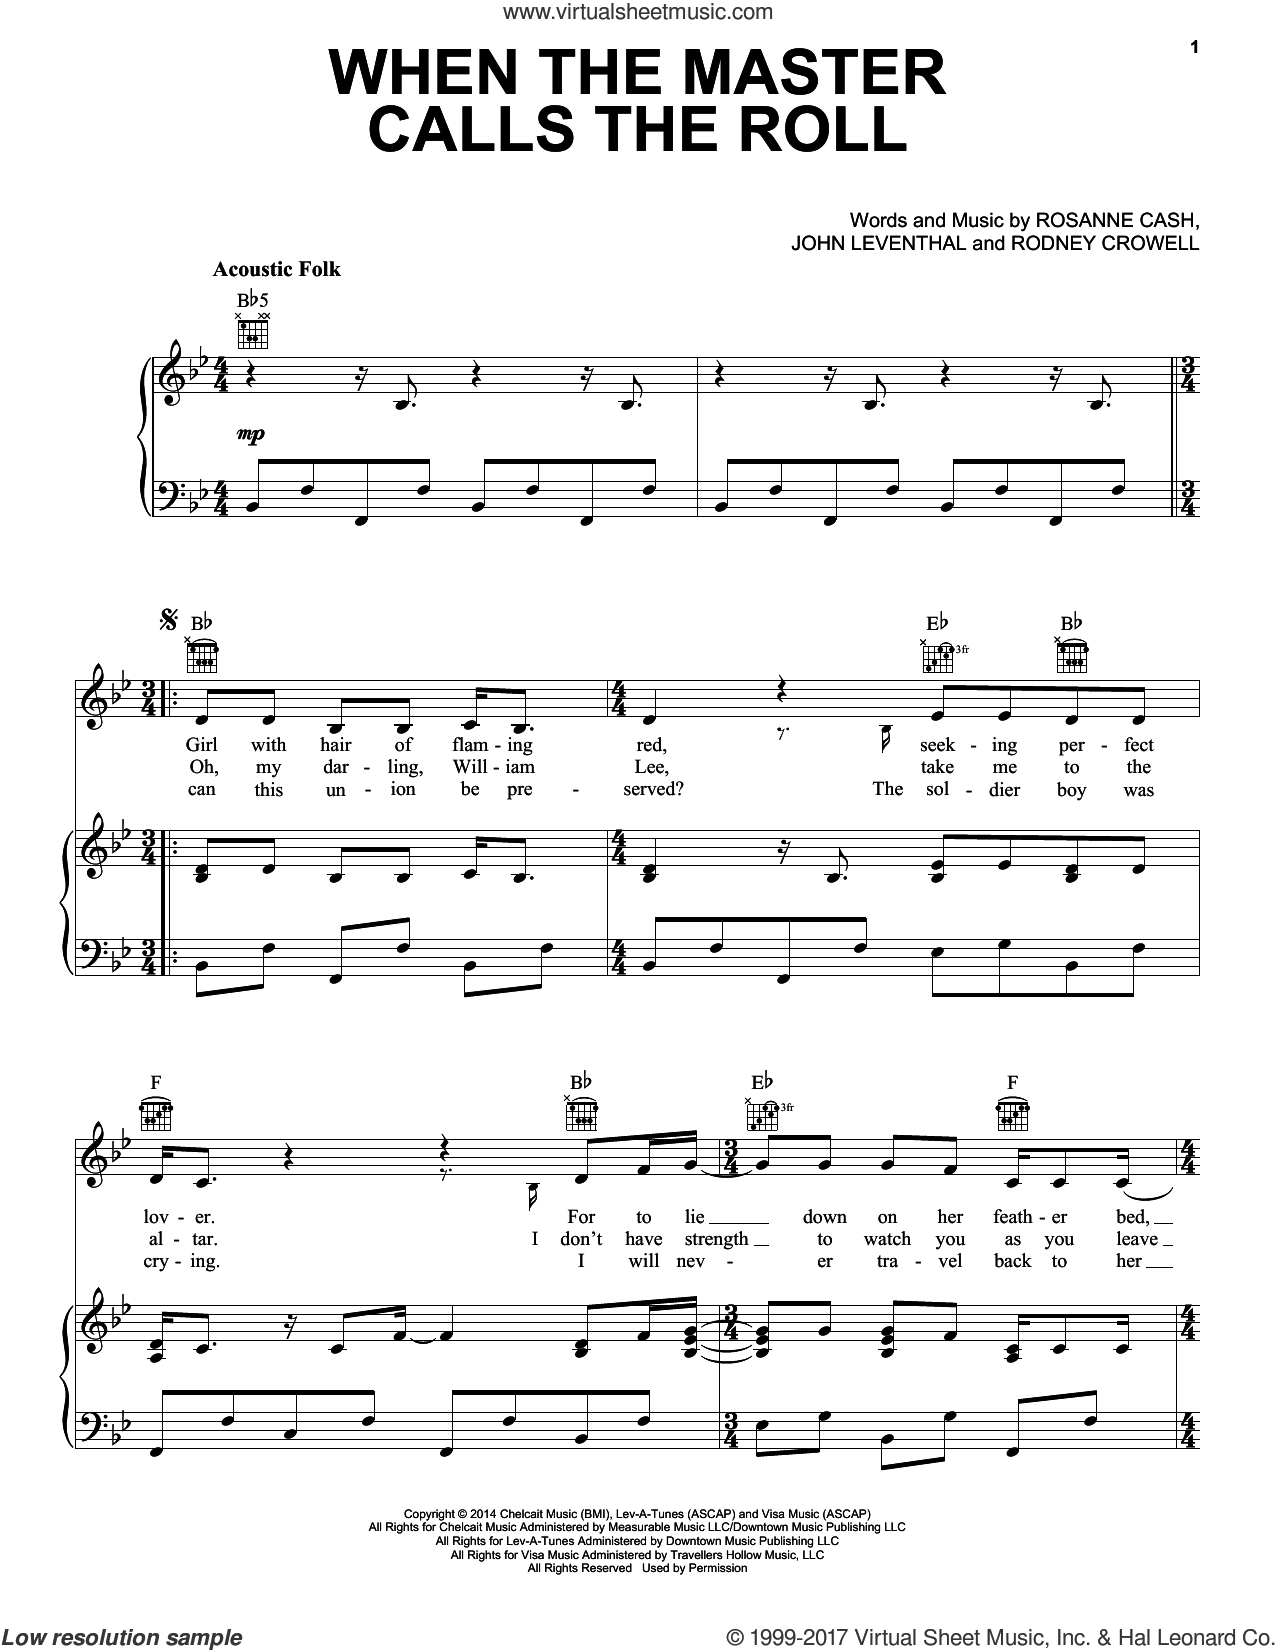 When The Master Calls The Roll sheet music for voice, piano or guitar by Rosanne Cash, John Leventhal and Rodney Crowell. Score Image Preview.